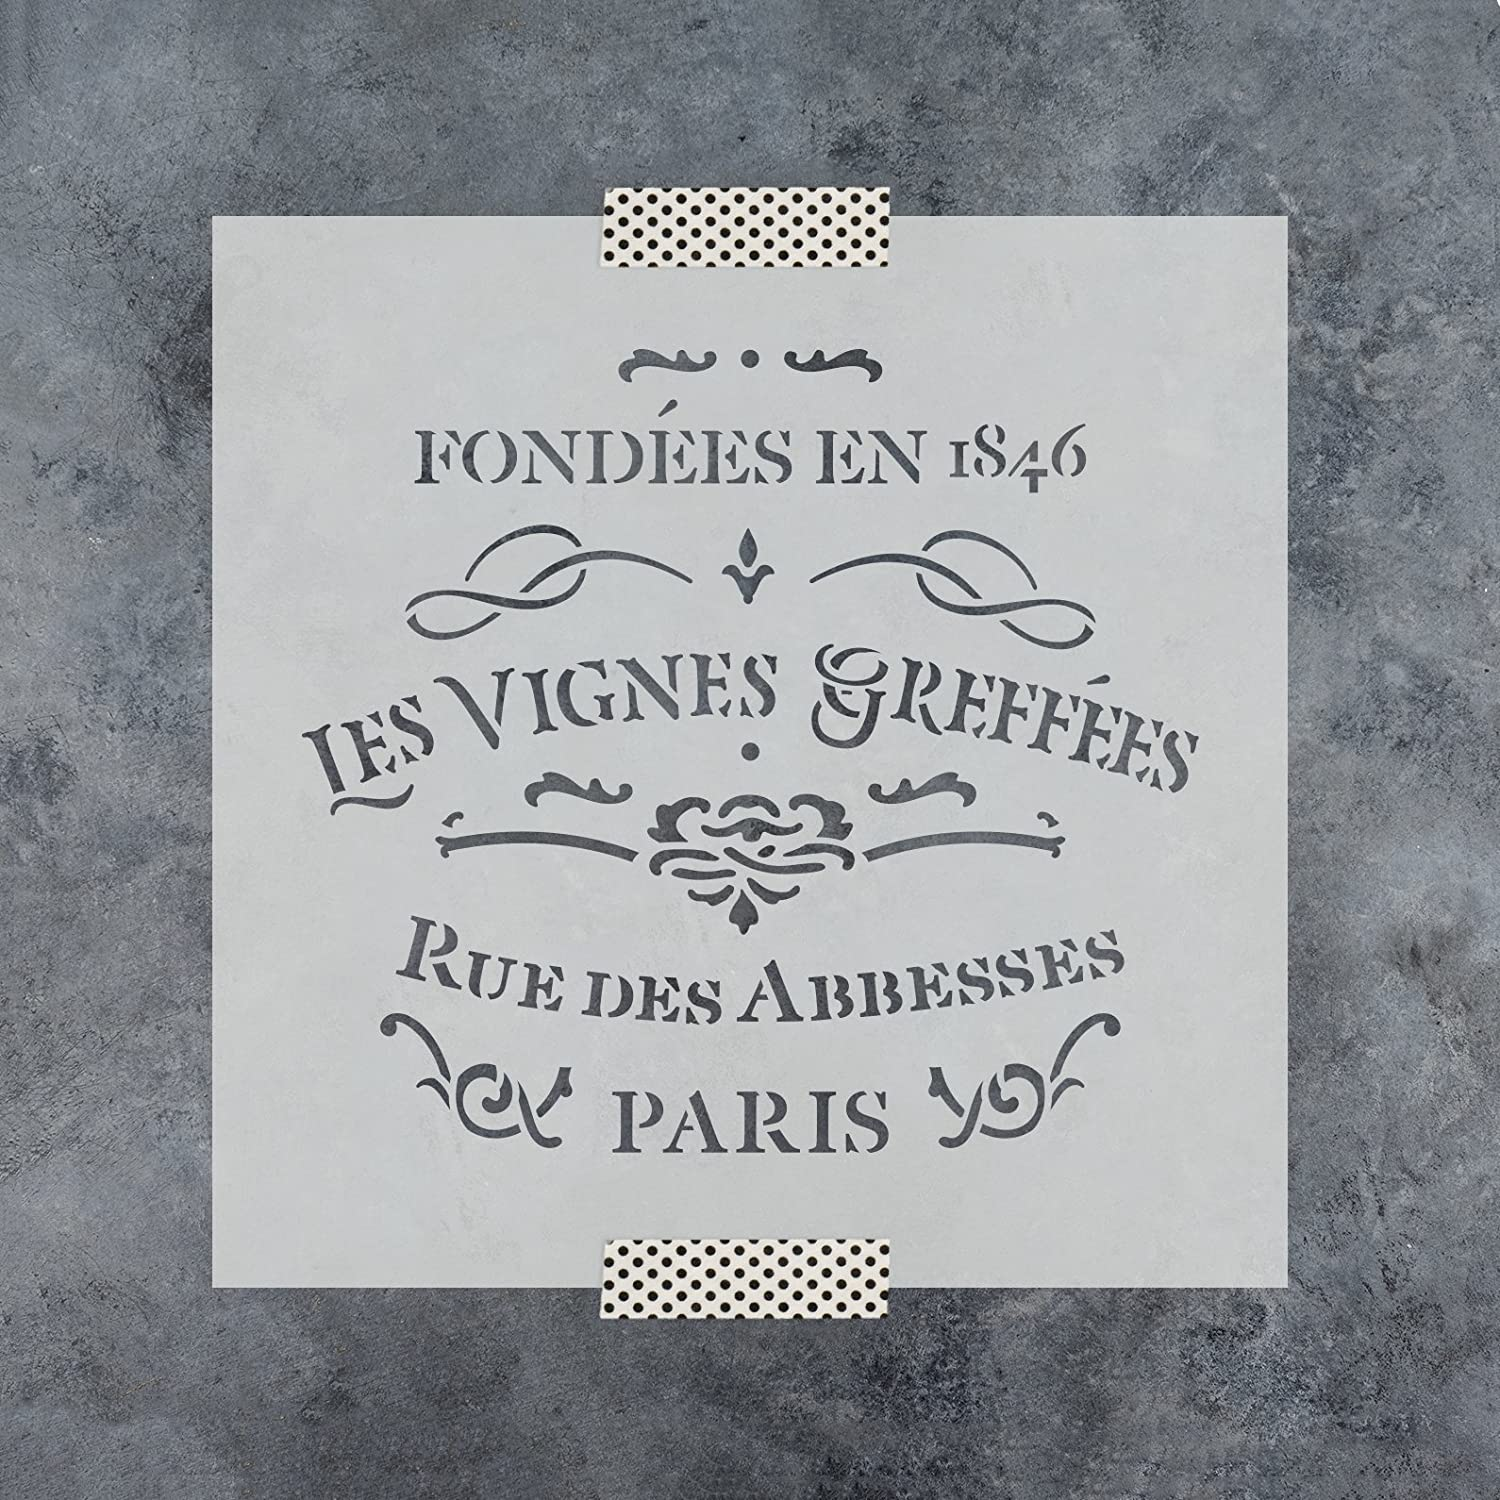 French Label Les Vignes Greffes Stencil Template for Walls and Crafts Reusable Stencils for Painting in Small /& Large Sizes